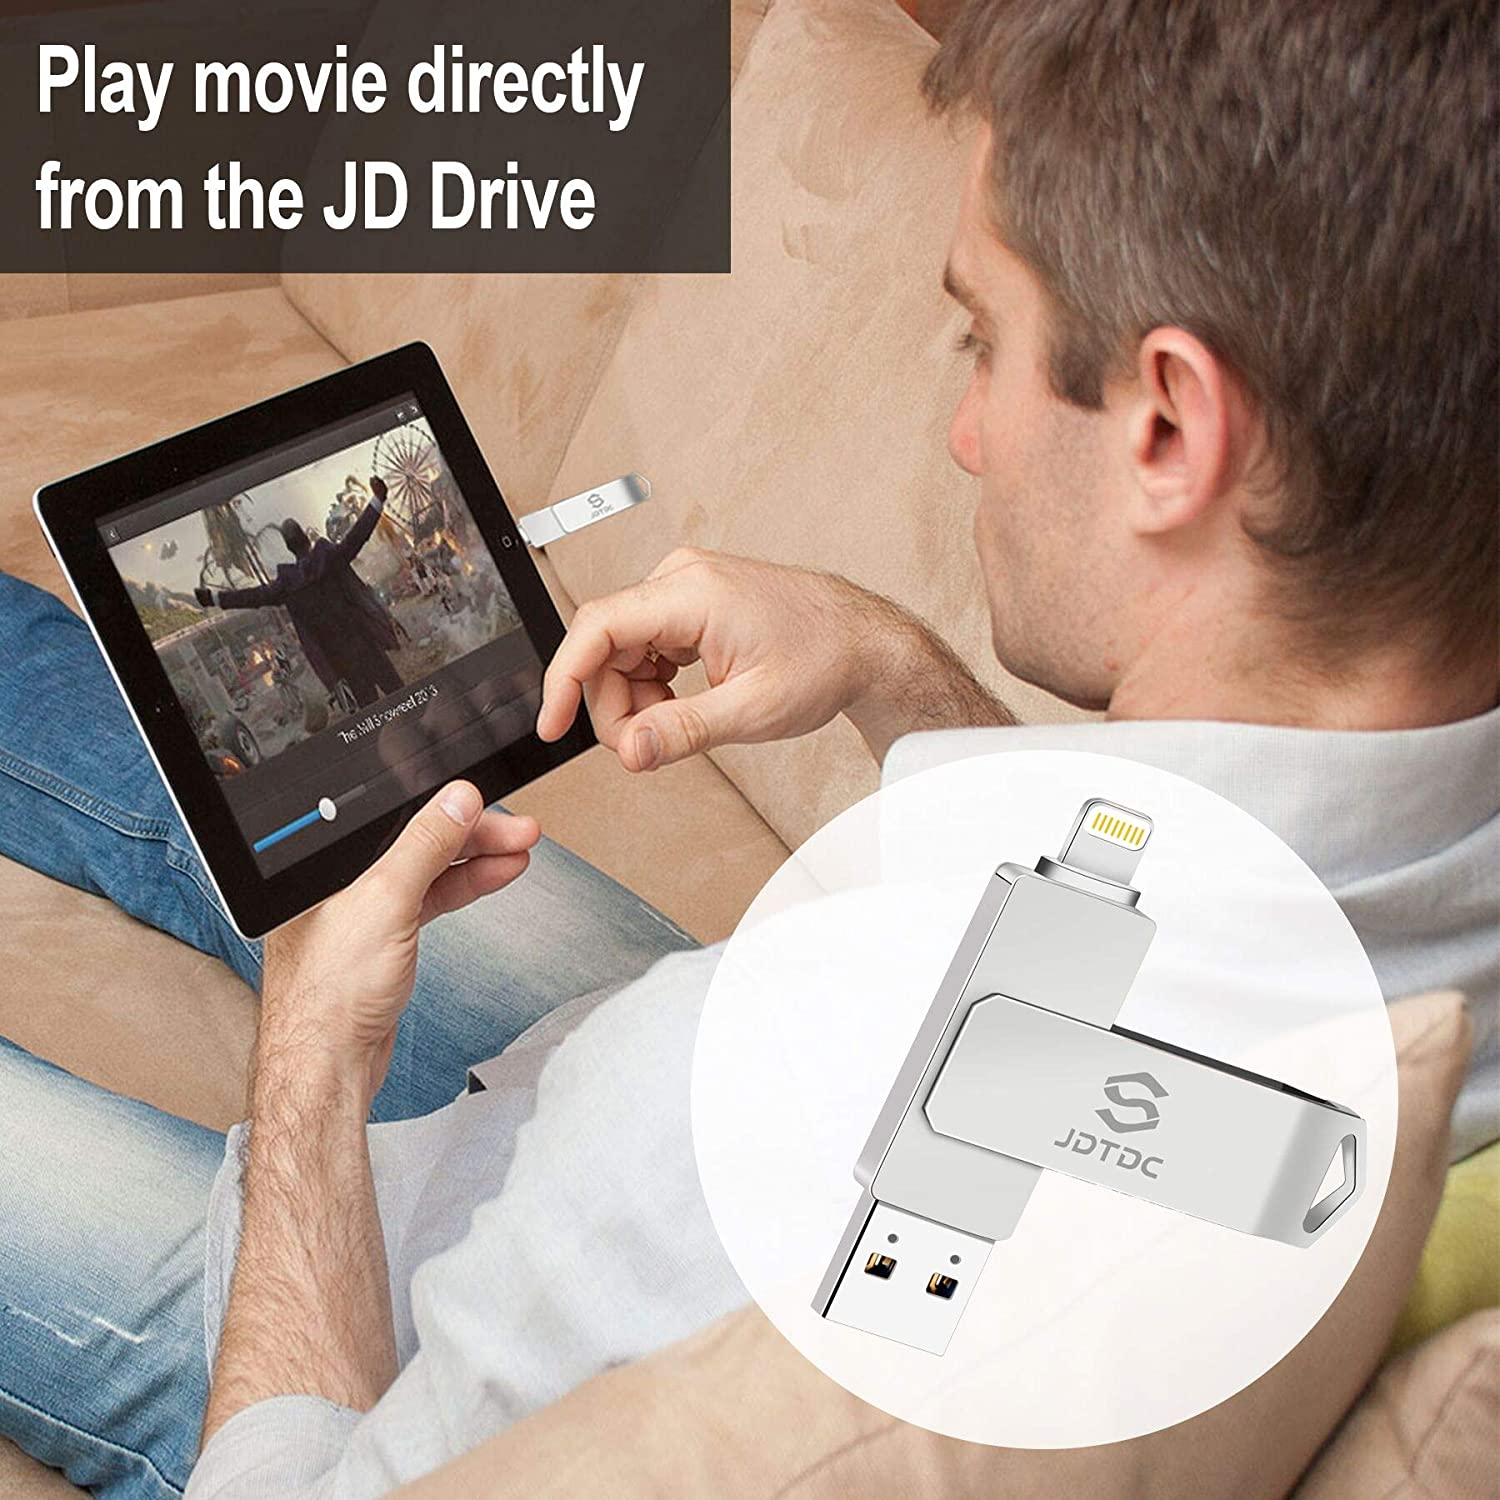 Apple MFi Certified 128GB Photo-Stick-for-iPhone-Storage iPhone-Memory iPhone USB for Photos iPhone USB Flash Drive Memory for iPad External iPhone Storage iPhone Thumb Drive for iPad Photo Stick